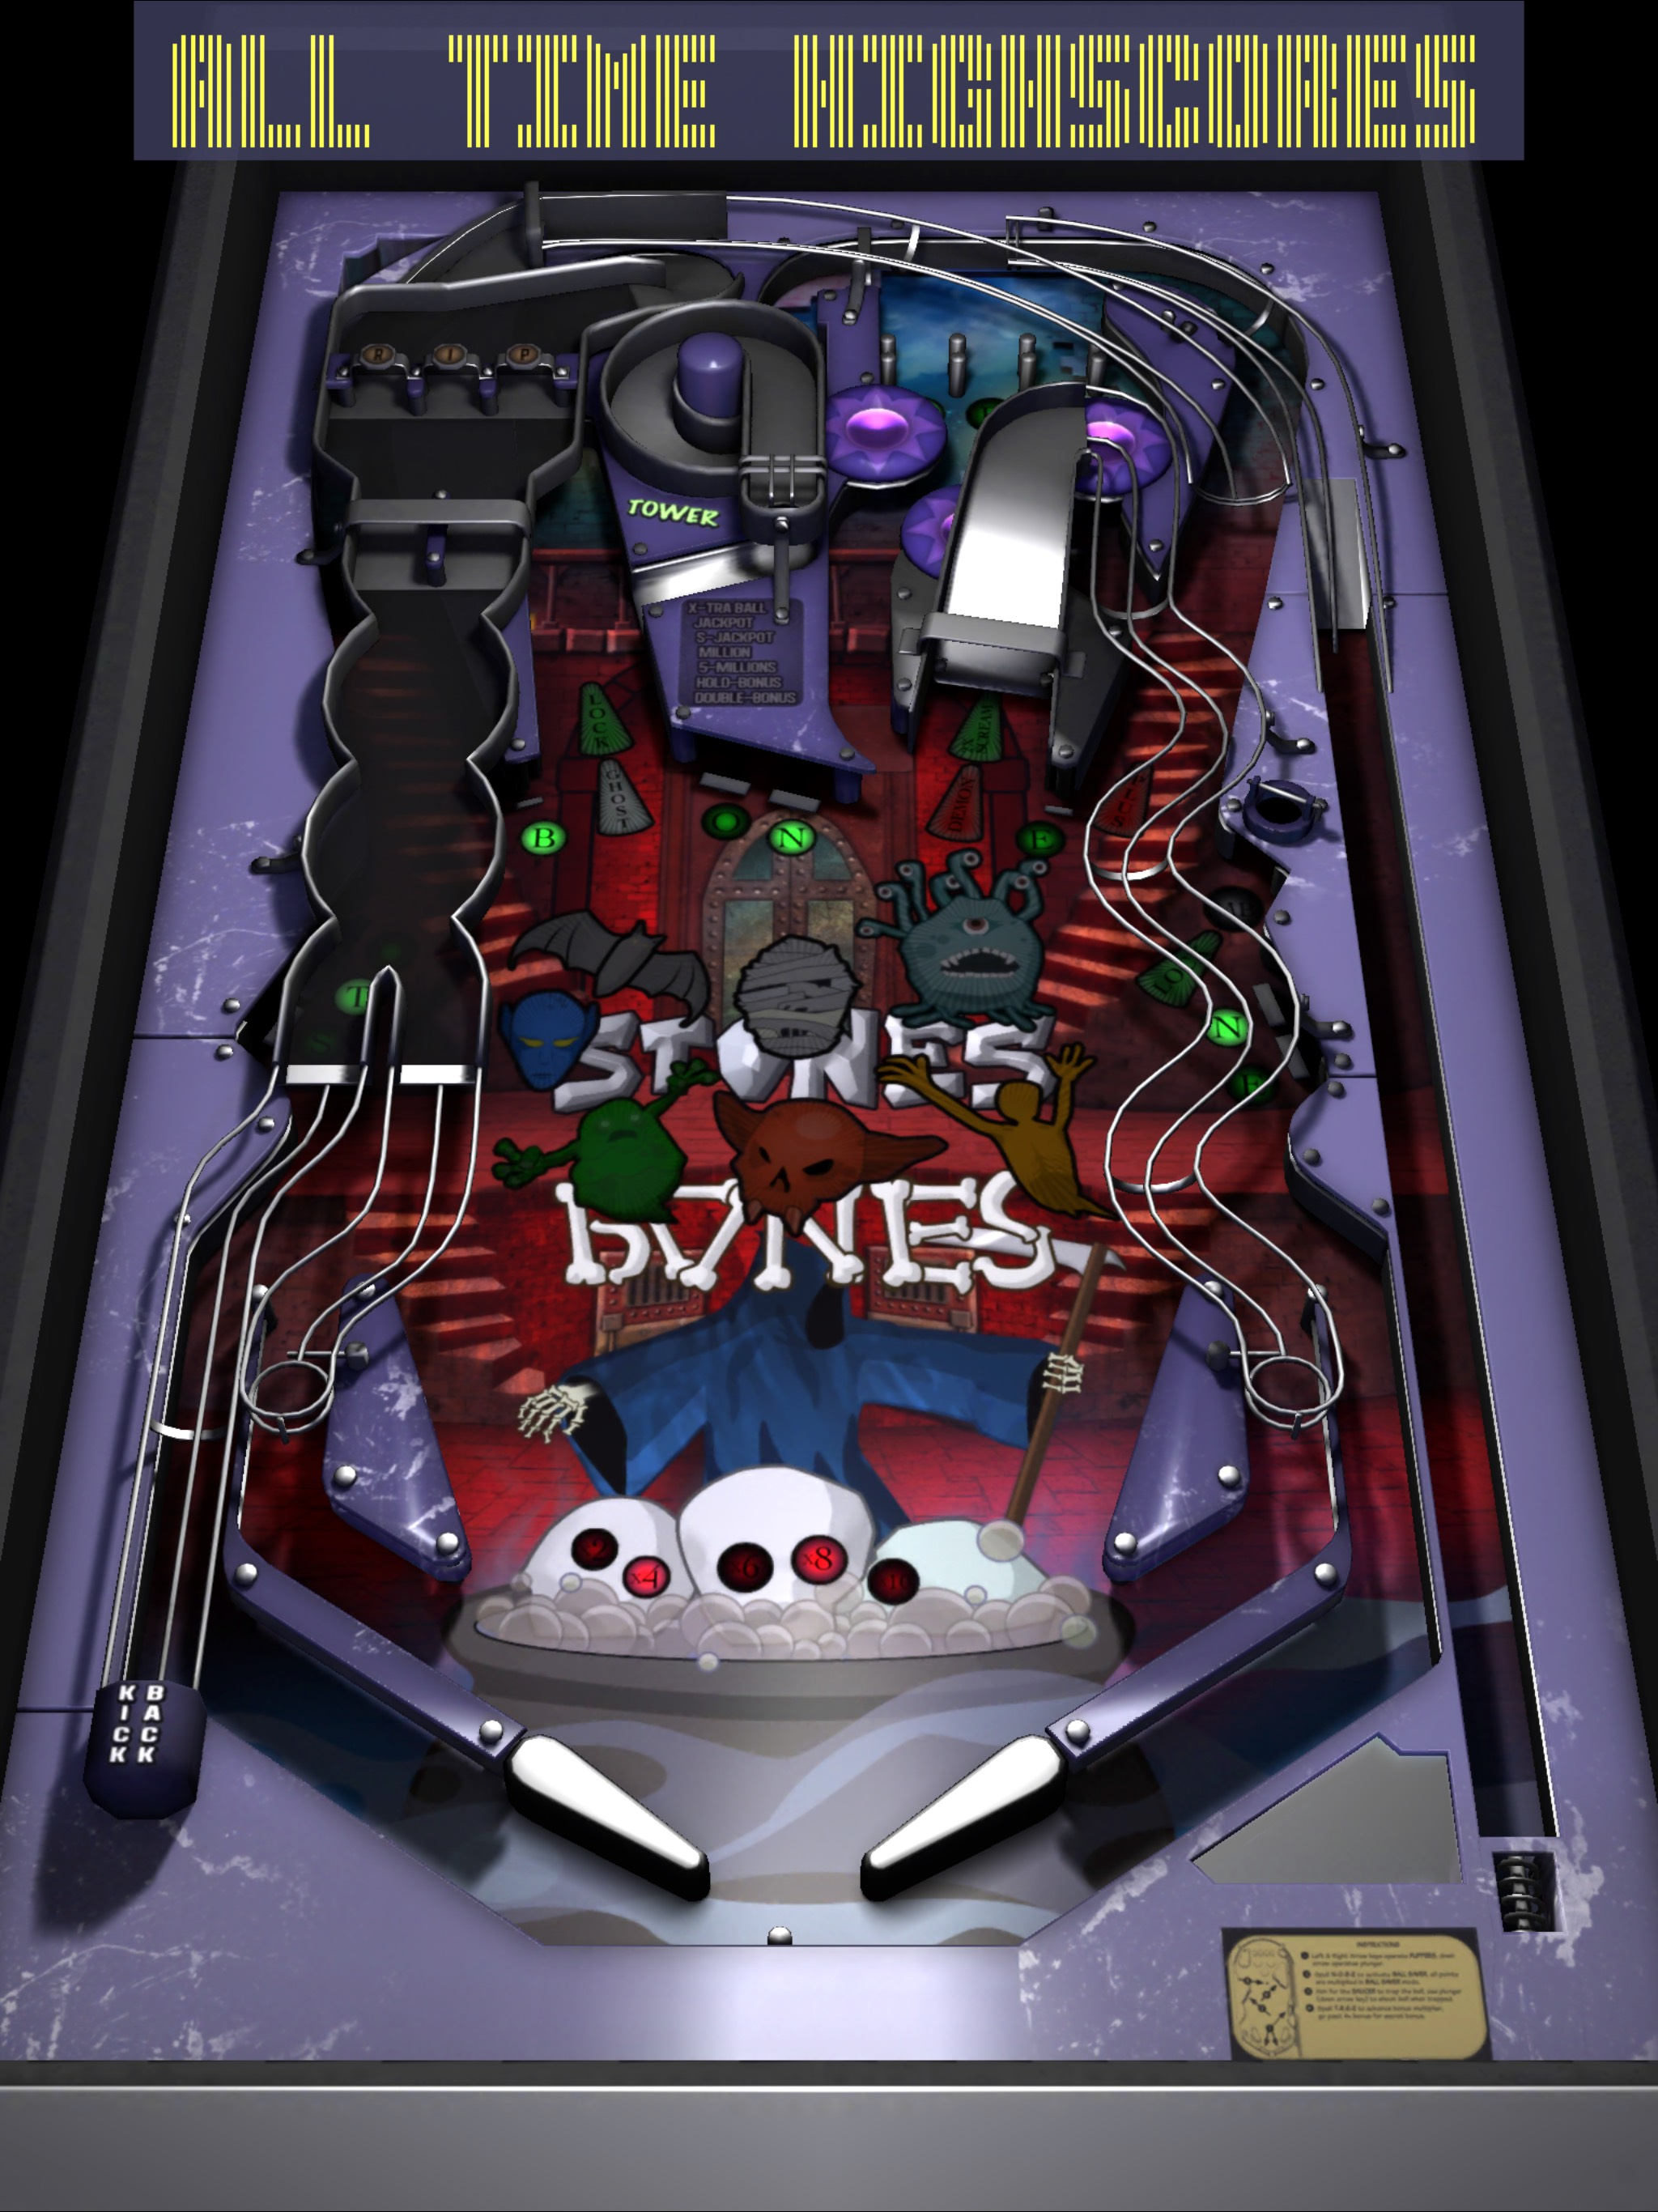 Pro Pinball is back, baby! - Games - Quarter To Three Forums